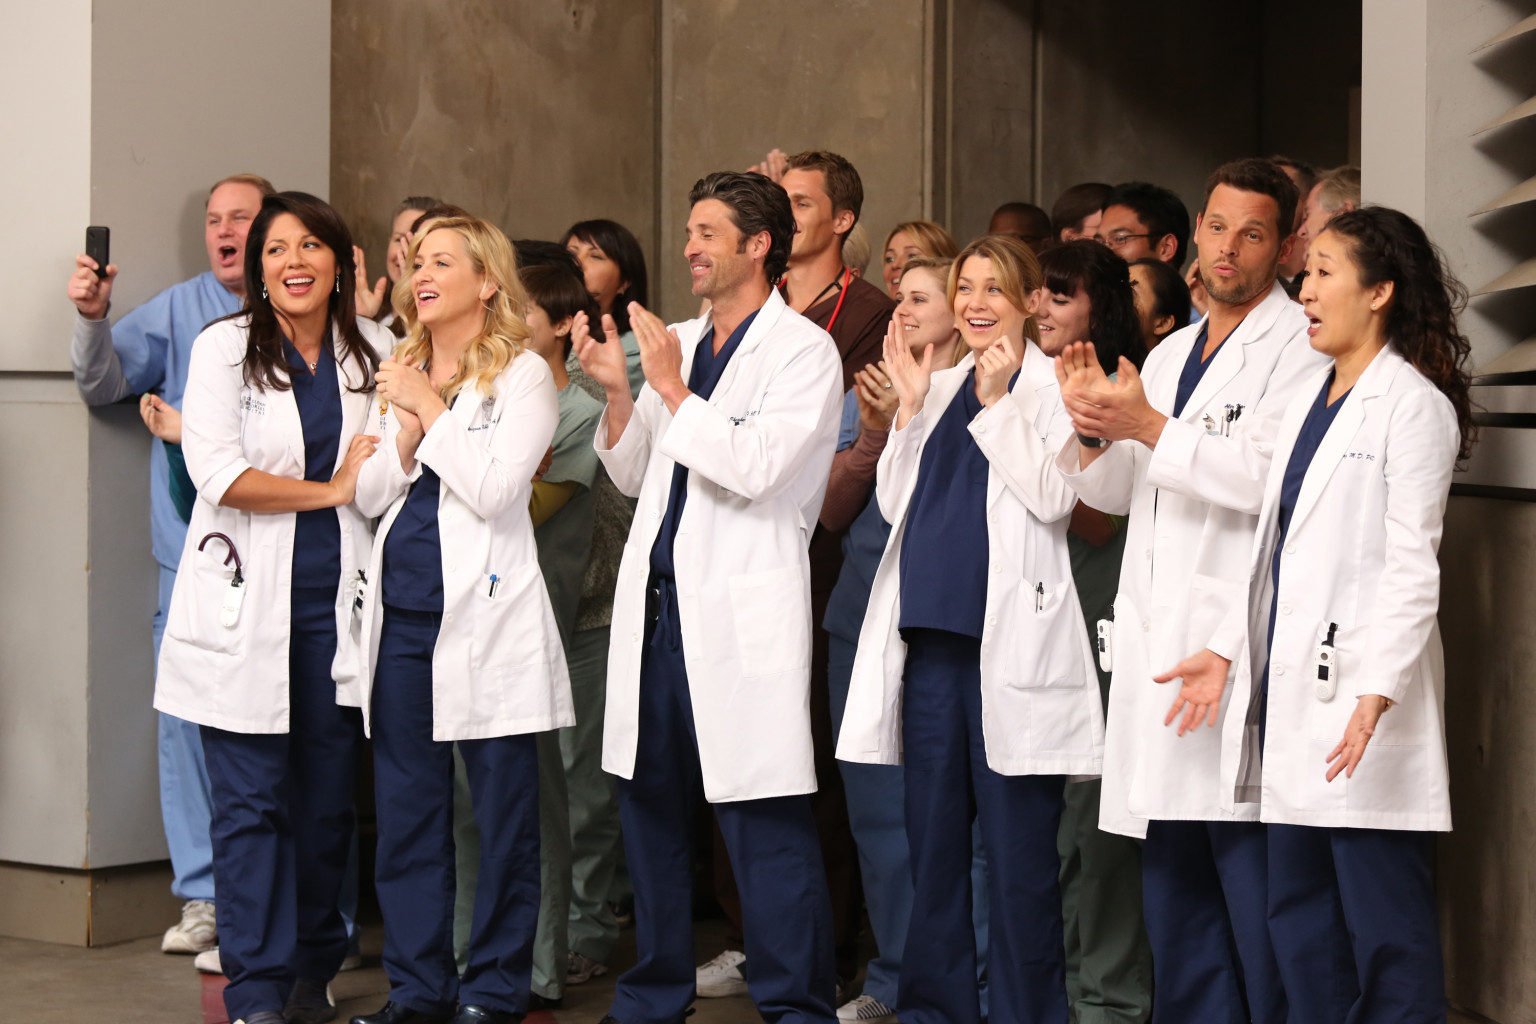 25 \'Grey\'s Anatomy\' Episodes To Watch Before Season 10 | HuffPost